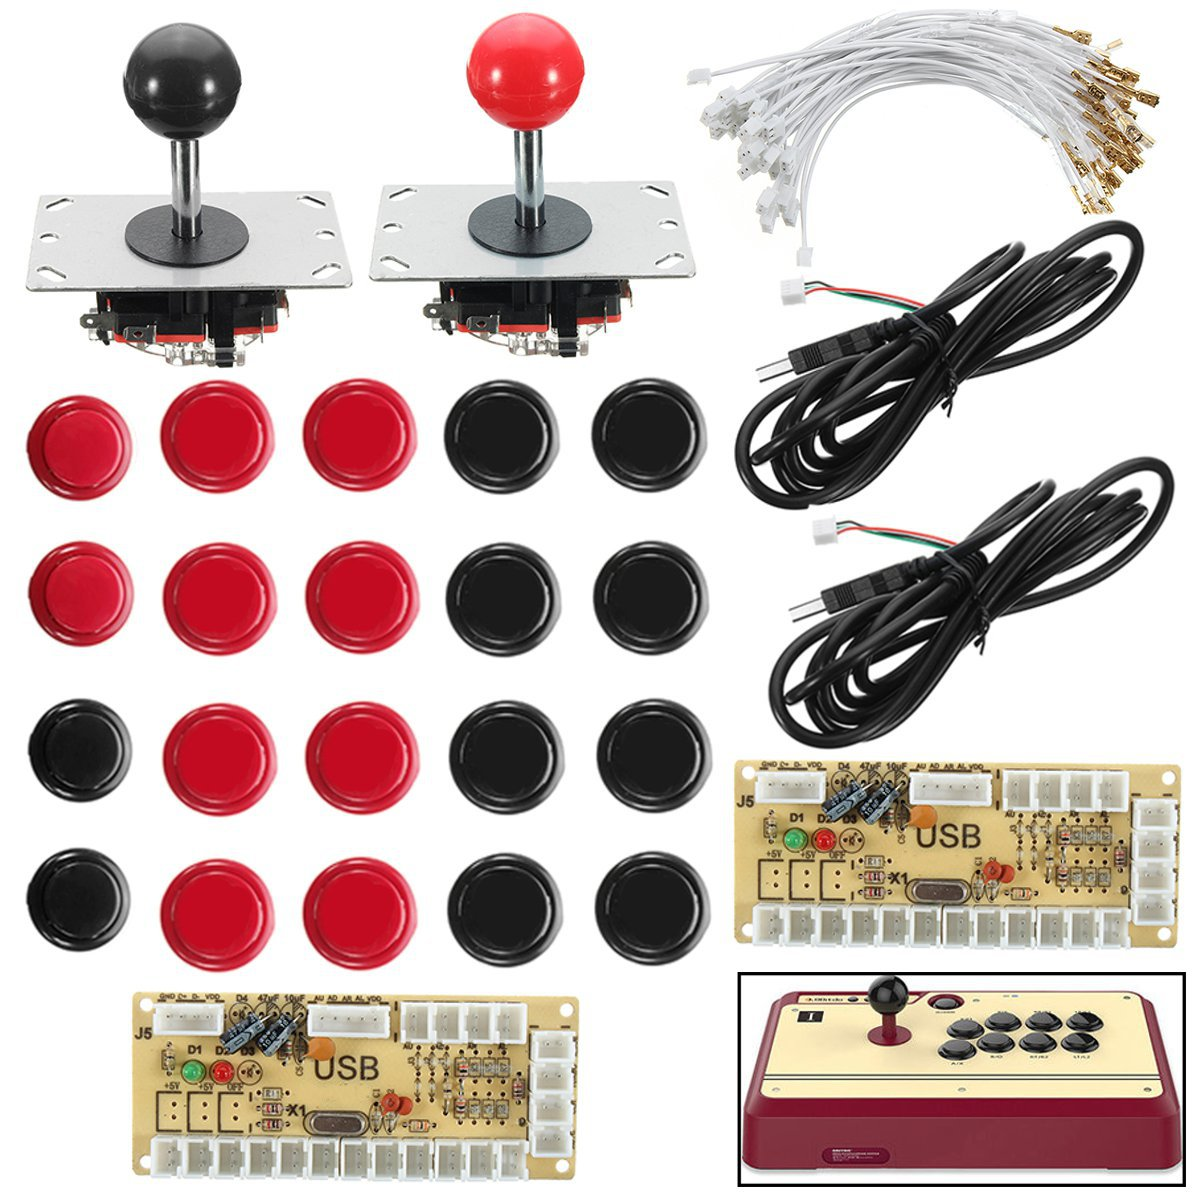 2 Player Zeros Delay For Arcade Game Joystick DIY Kit 2 LED USB Encoder+2 Joystick+20 Push Buttons+28 Cables for Raspberry Pi